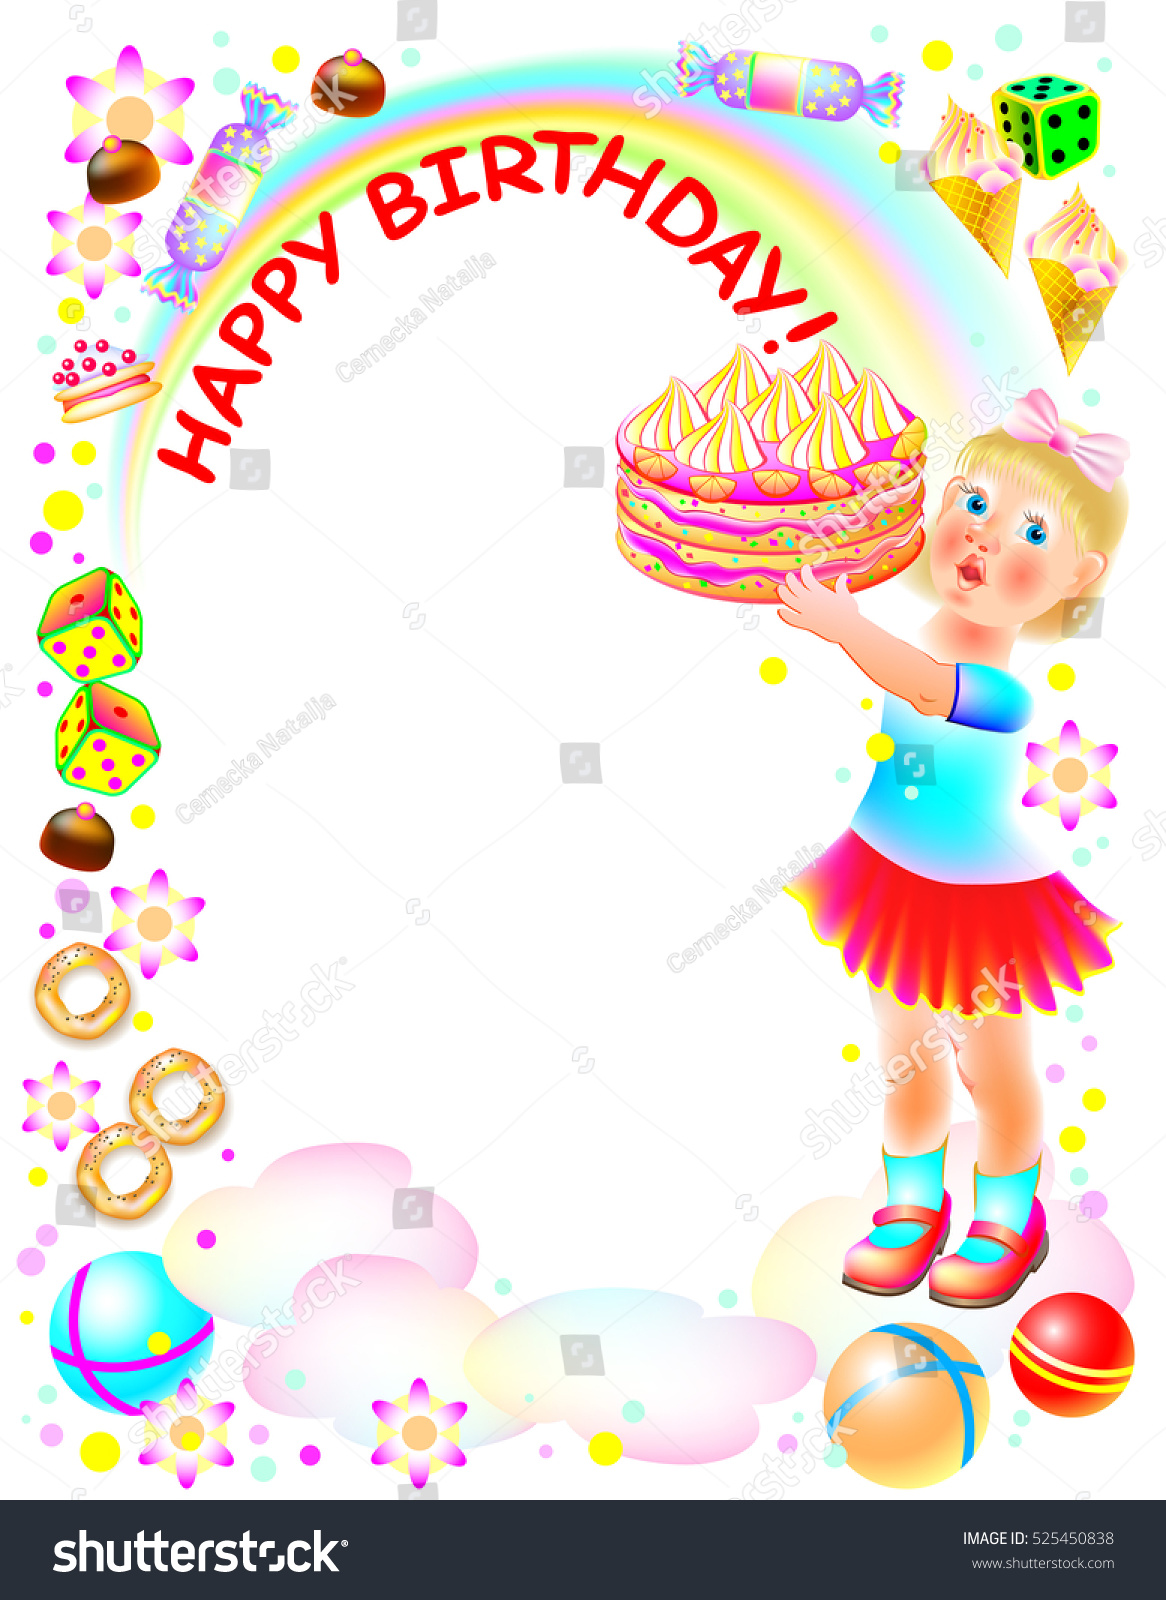 Birthday greeting card little girl holding stock vector 525450838 birthday greeting card with little girl holding a cake vector cartoon image kristyandbryce Image collections